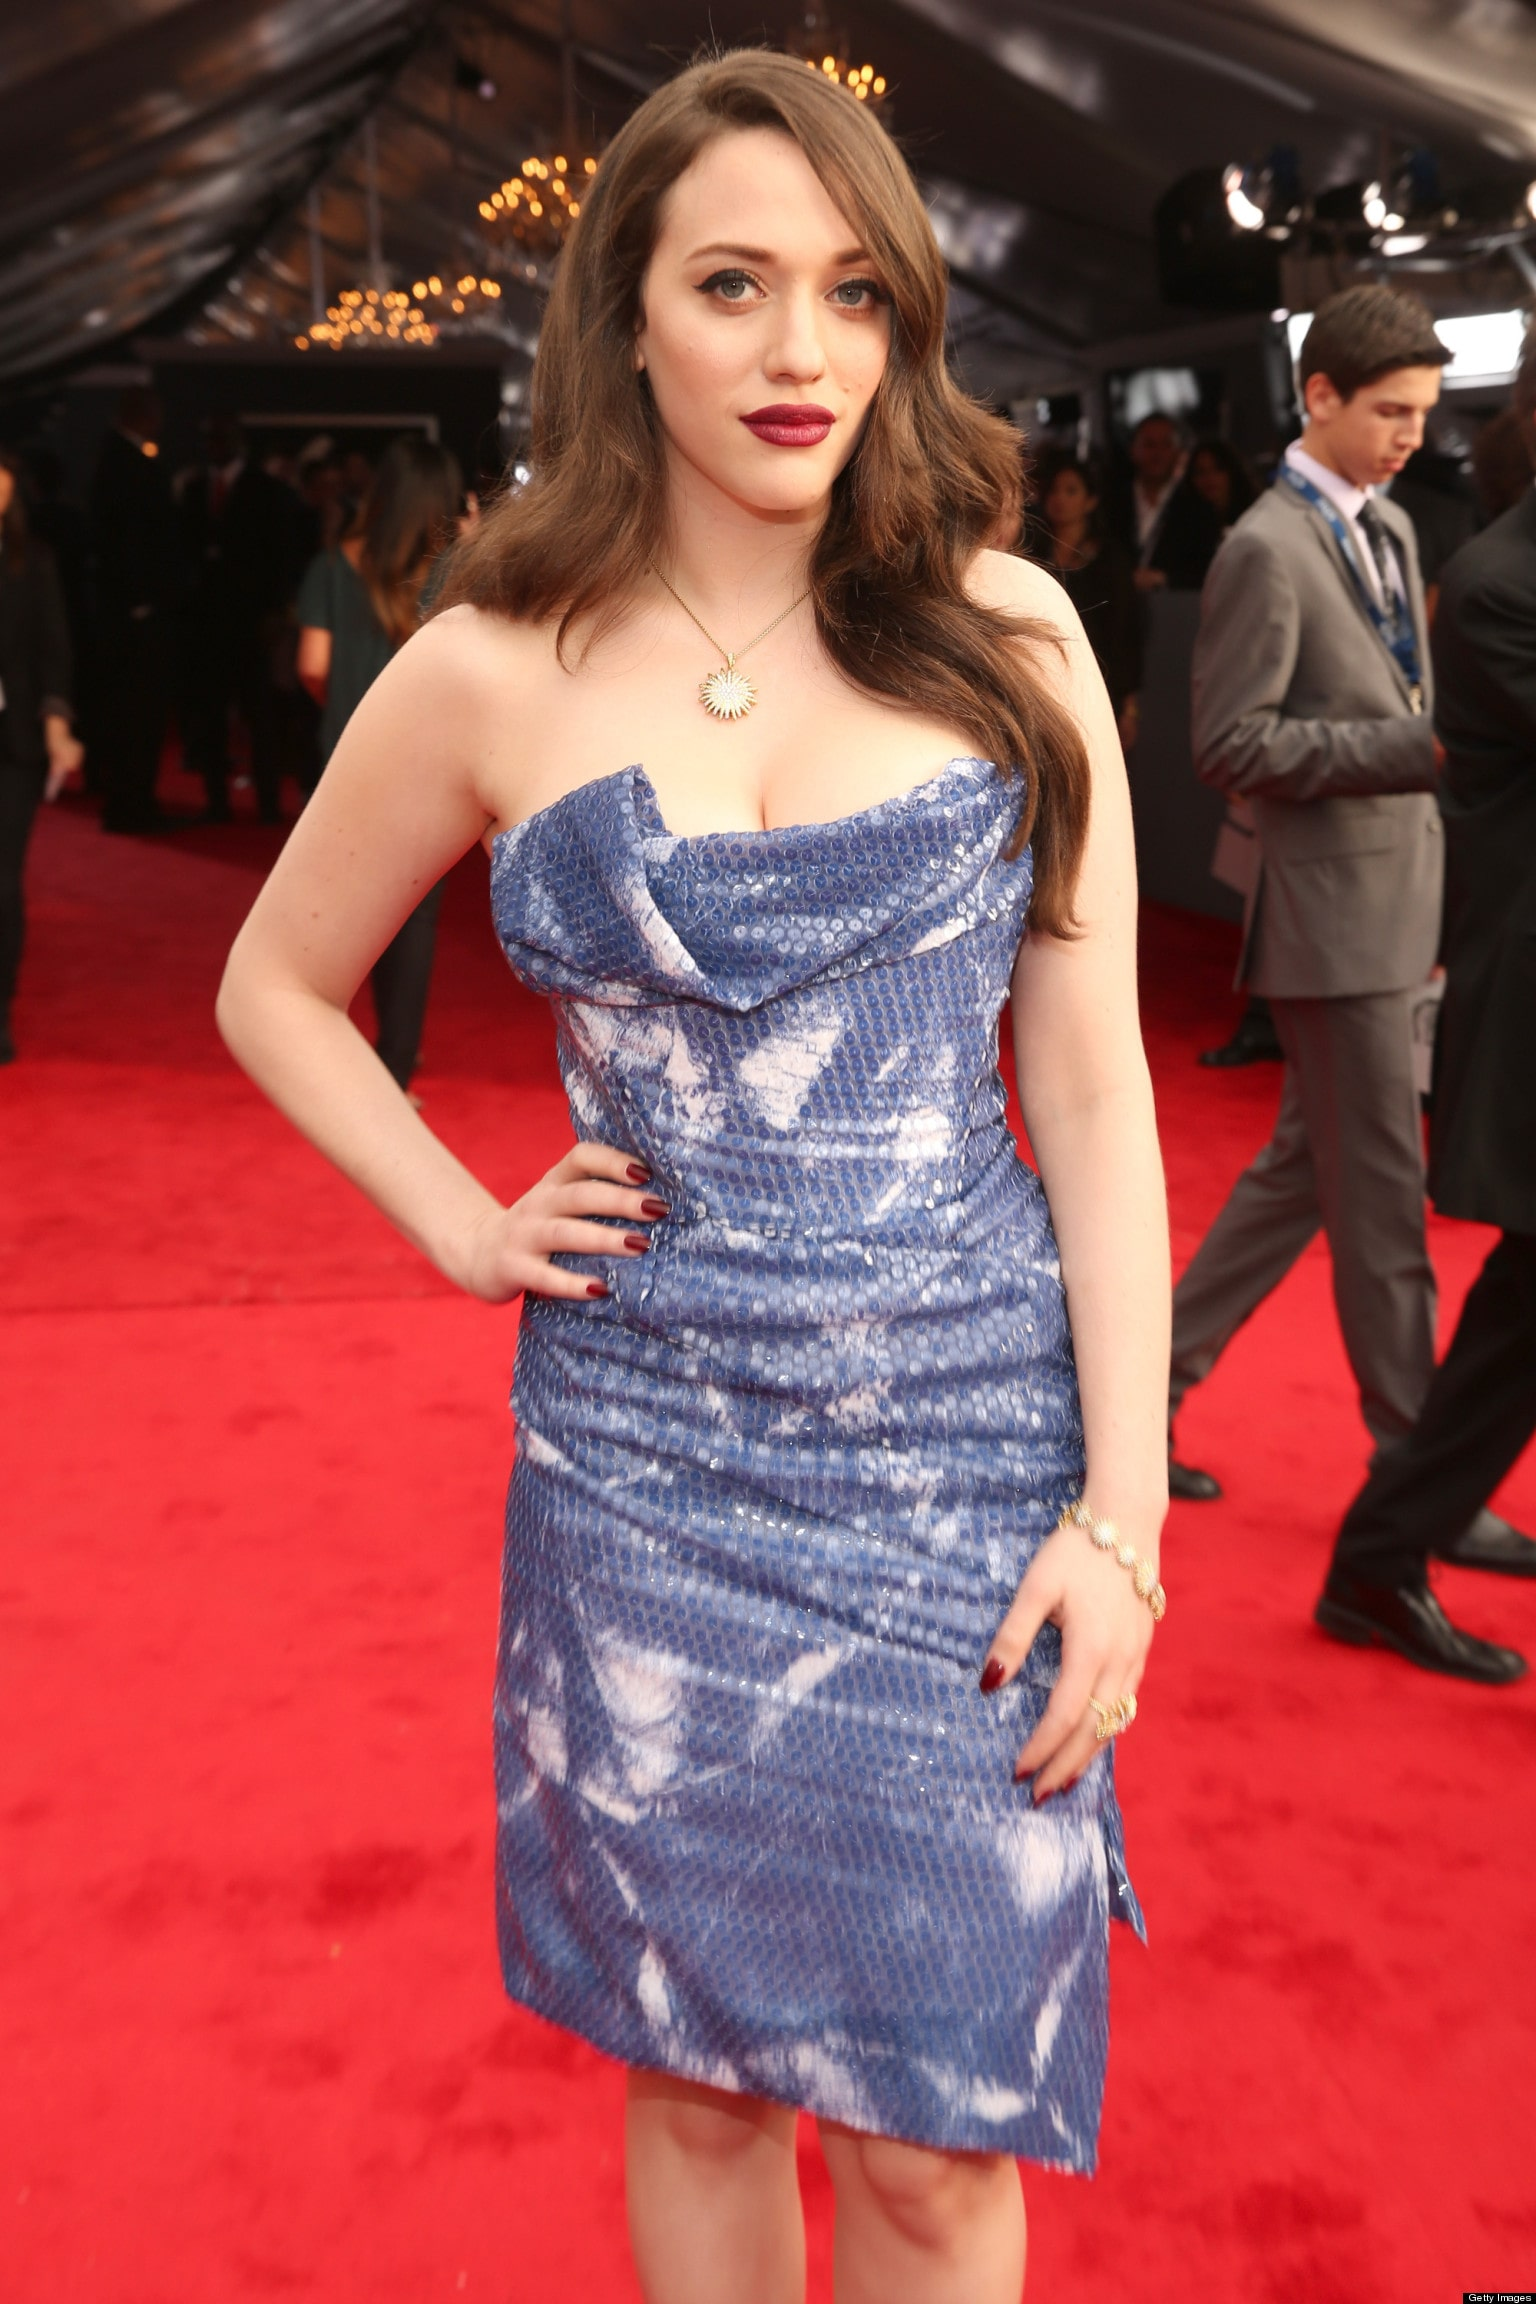 Kat Dennings sexy lady picture